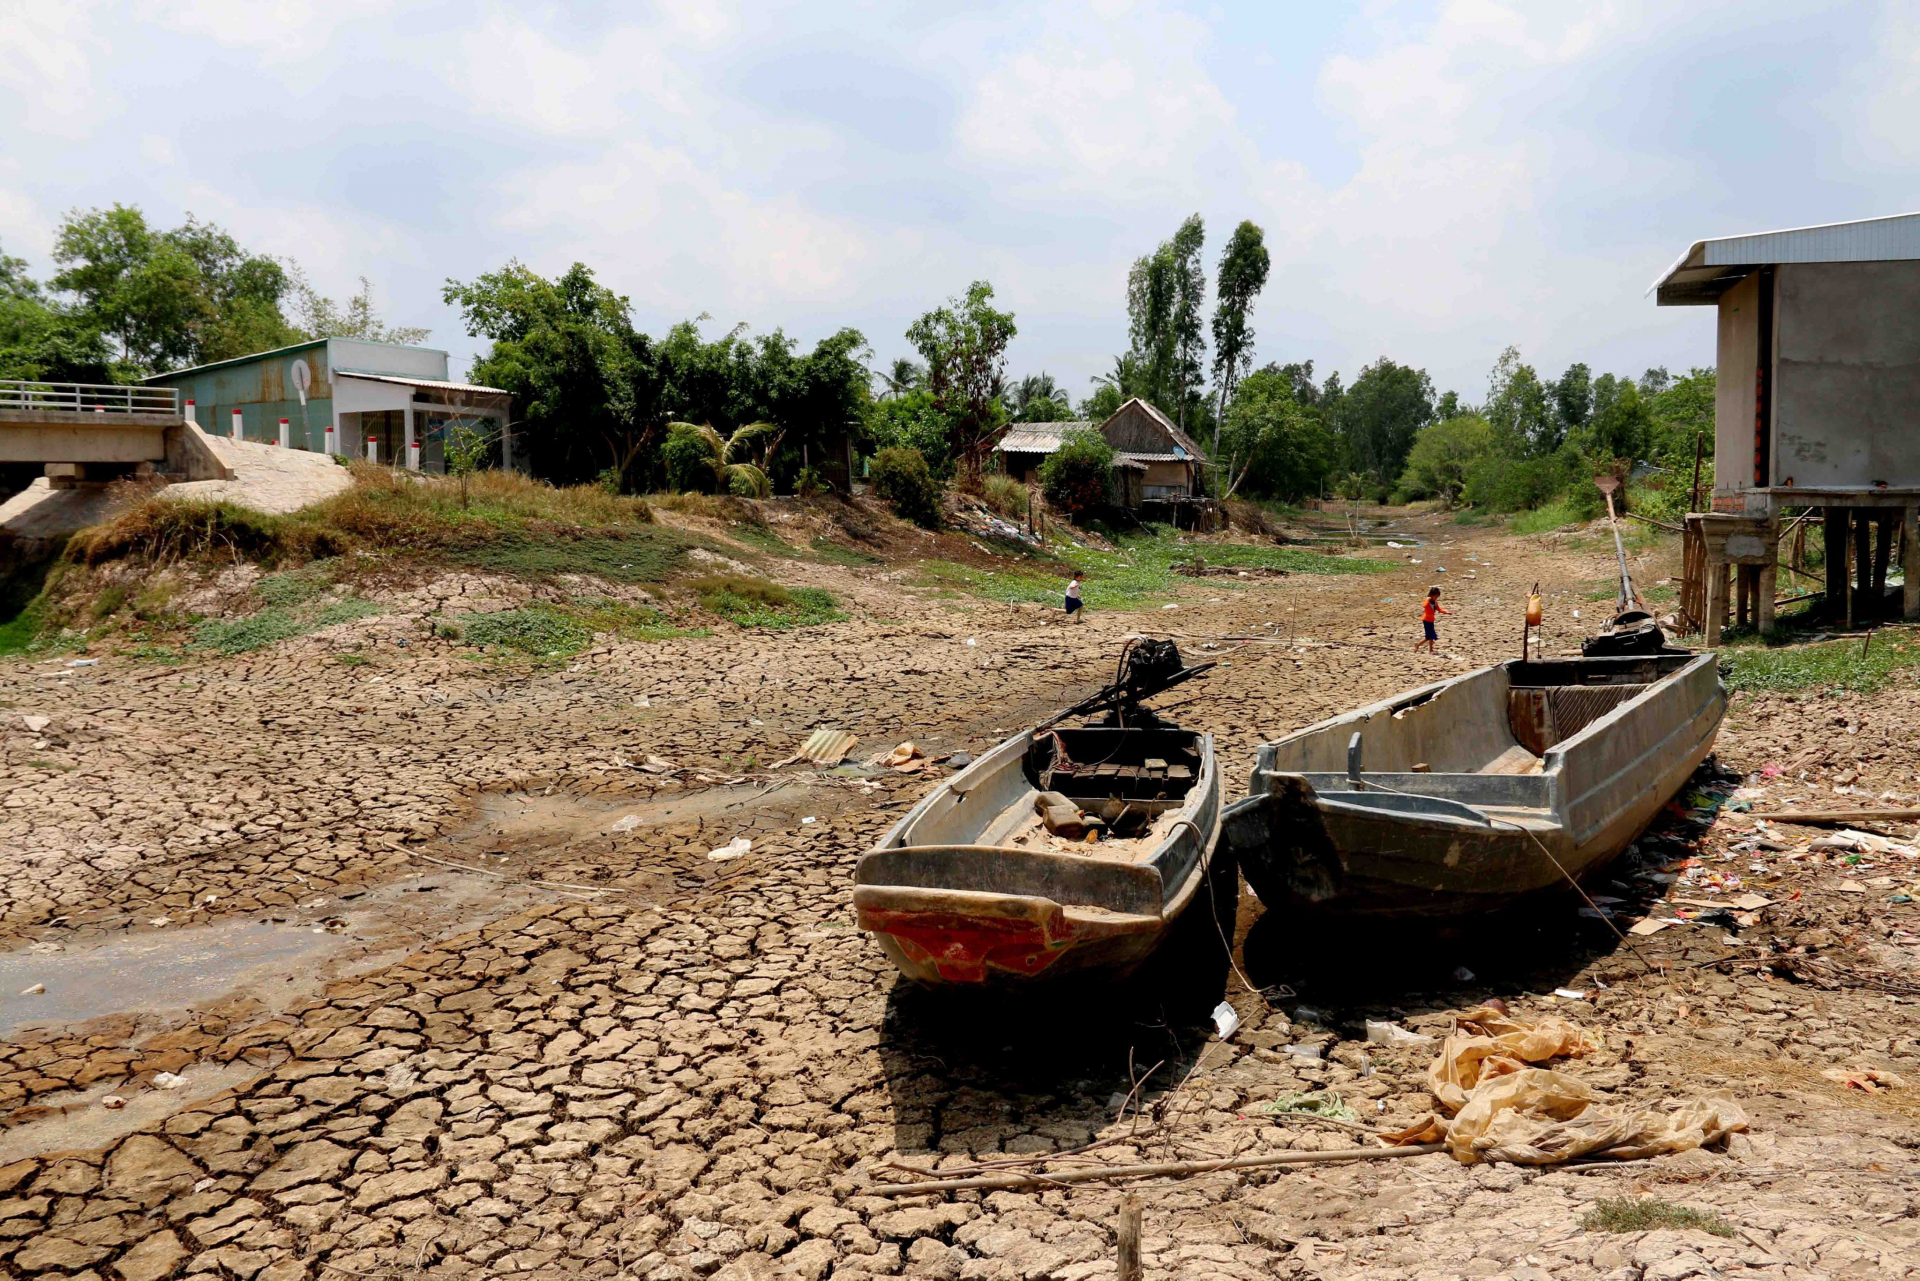 Record drought and salinity with desperate fresh water shortage, Mekong Delta crying for help